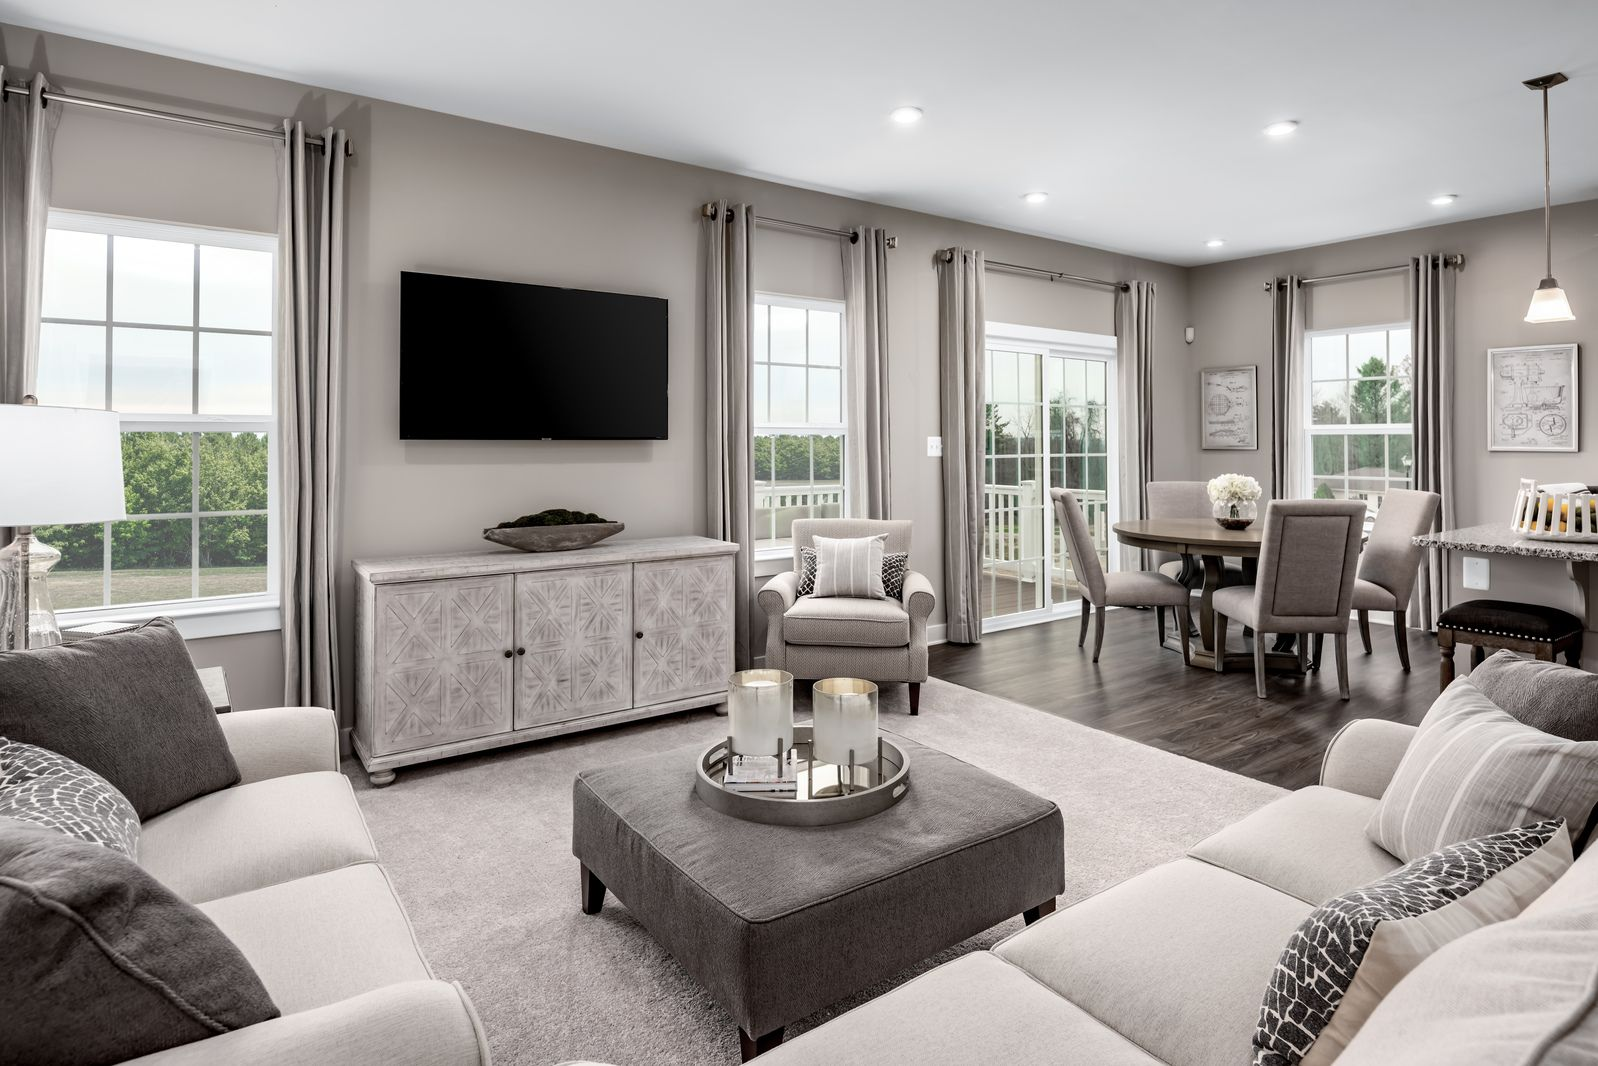 Living Area featured in the Alberti Ranch By Ryan Homes in Dover, DE